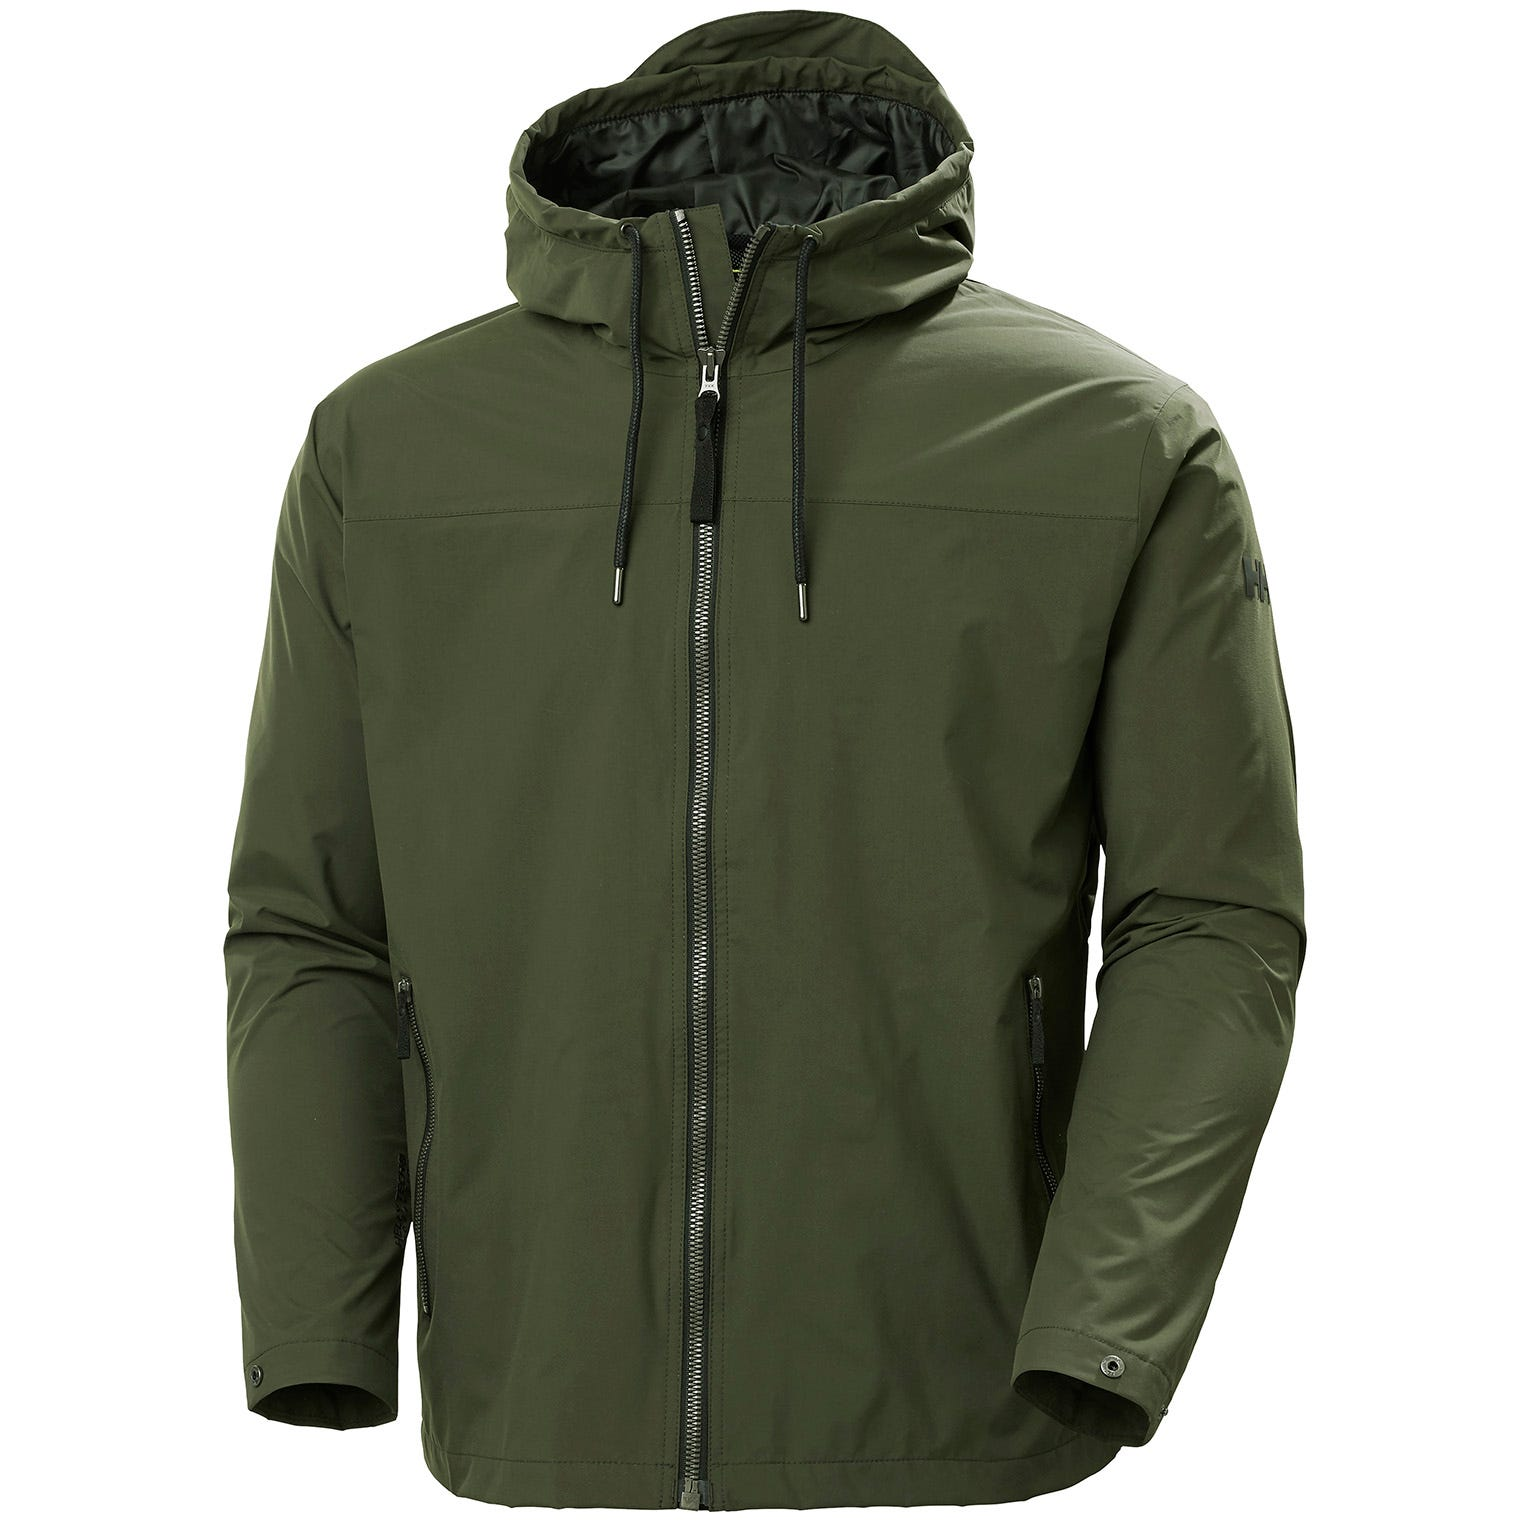 Urban Rain Jacket | Breathable For Summer Days Gb Helly Hansen Mens Green XL